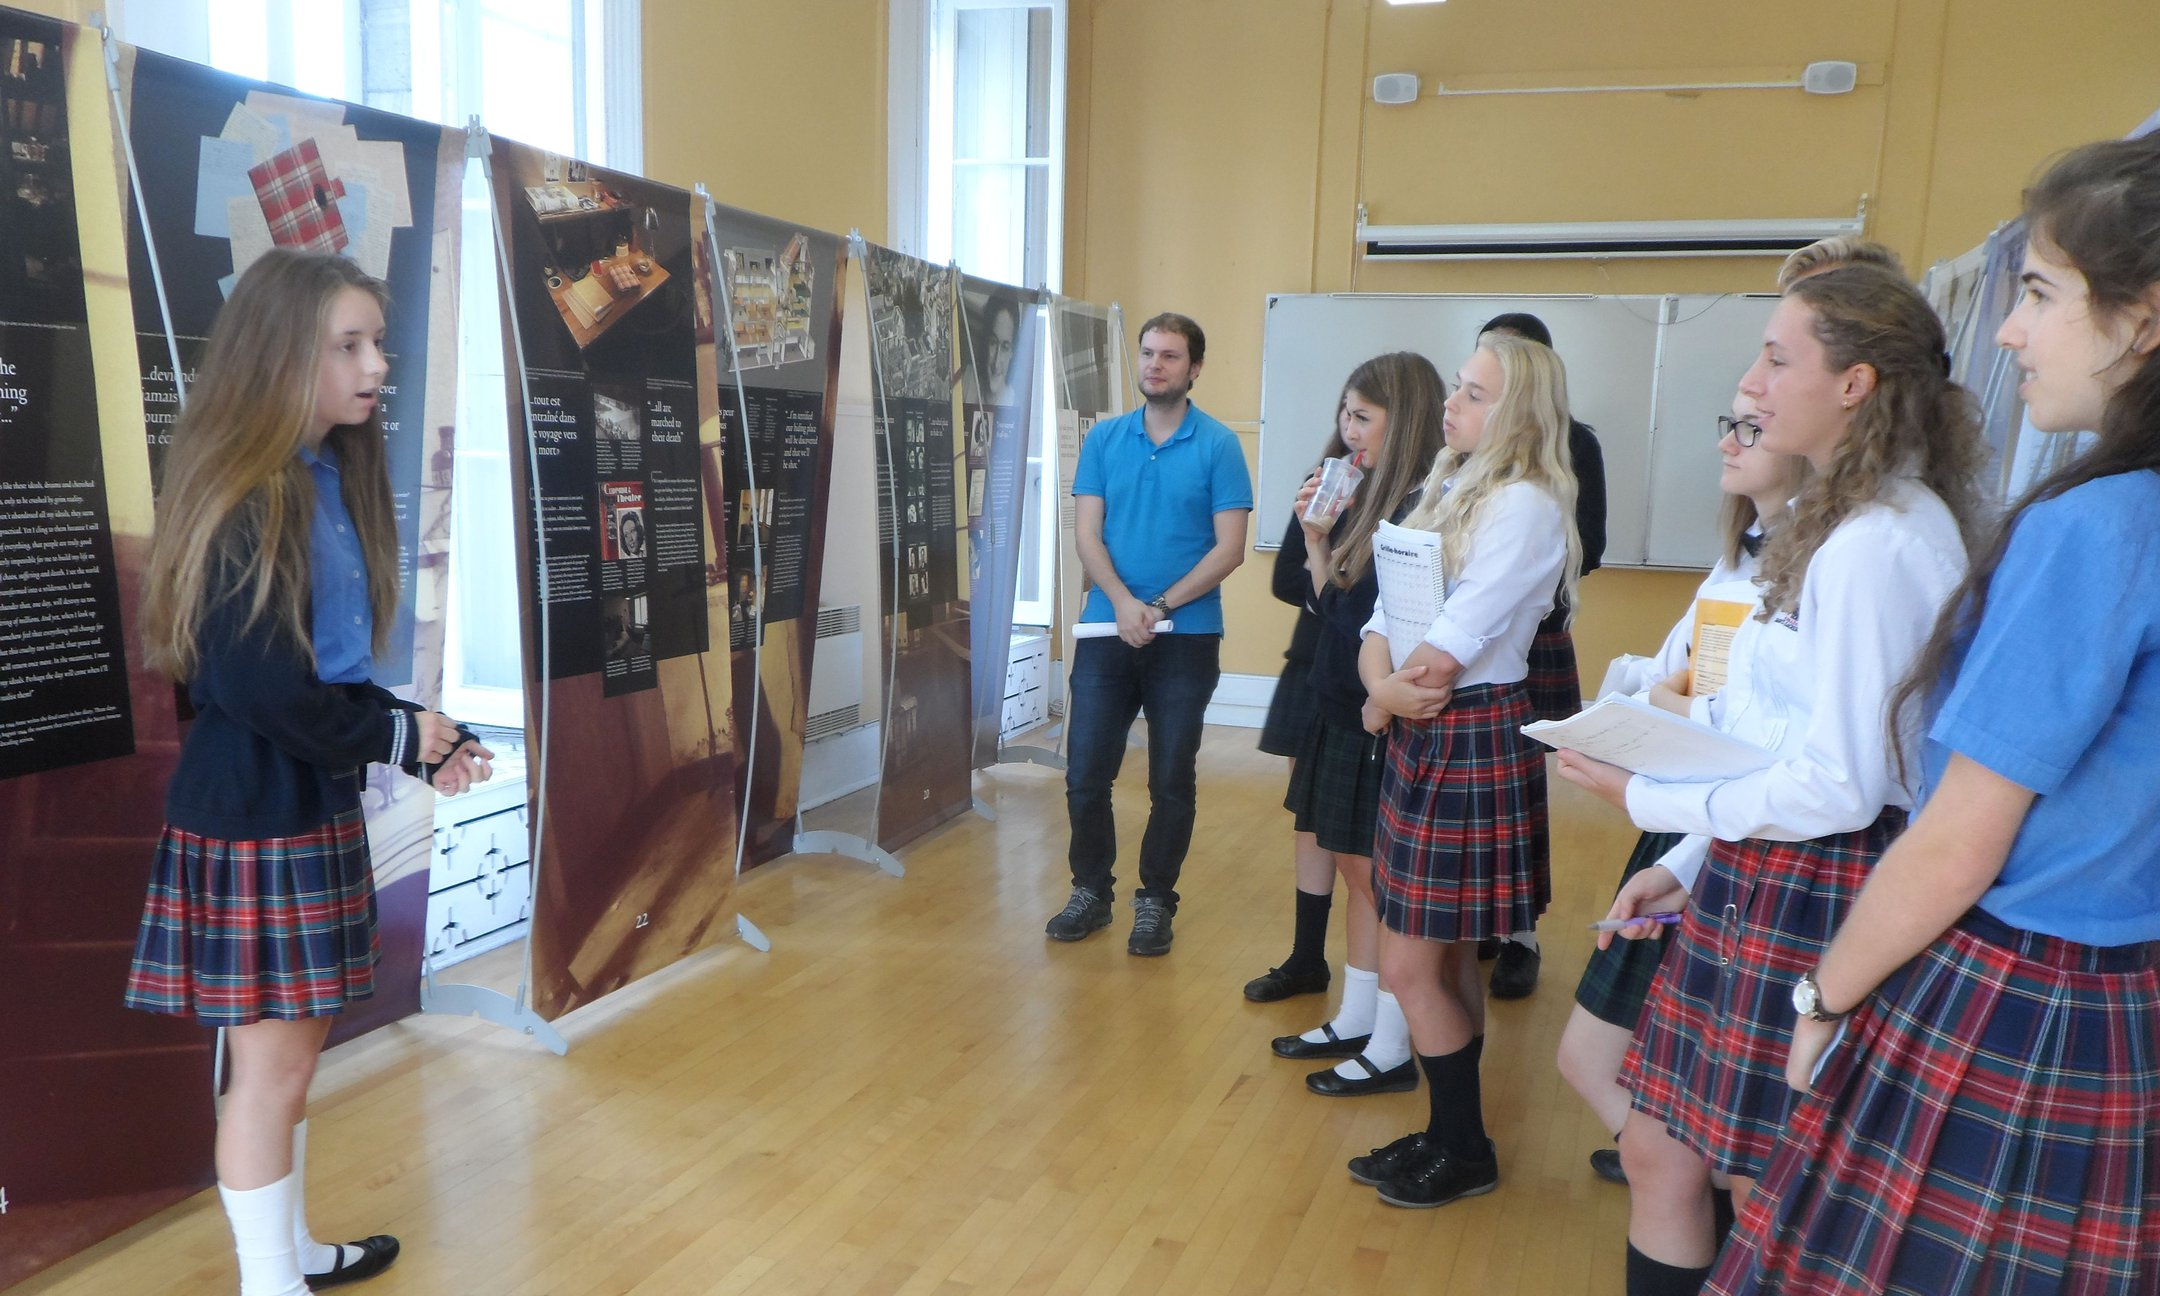 Students discussing the exhibition's themes with their peers in Terrebonne (October 2016)